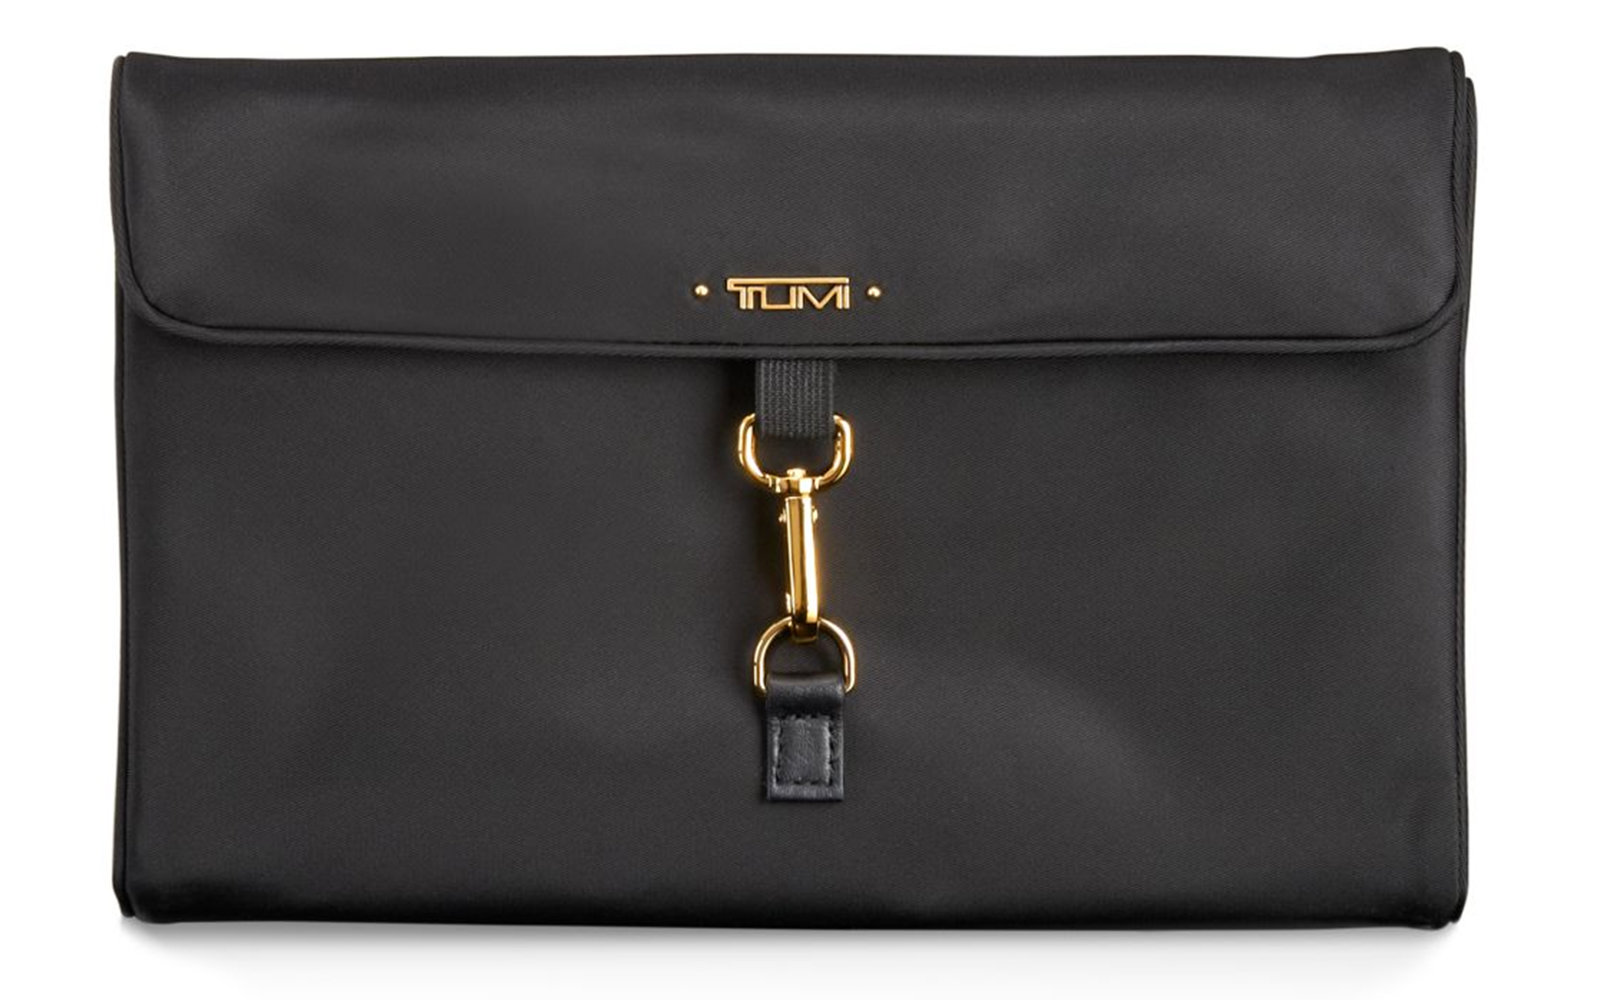 Travel Jewelry Bag from Tumi